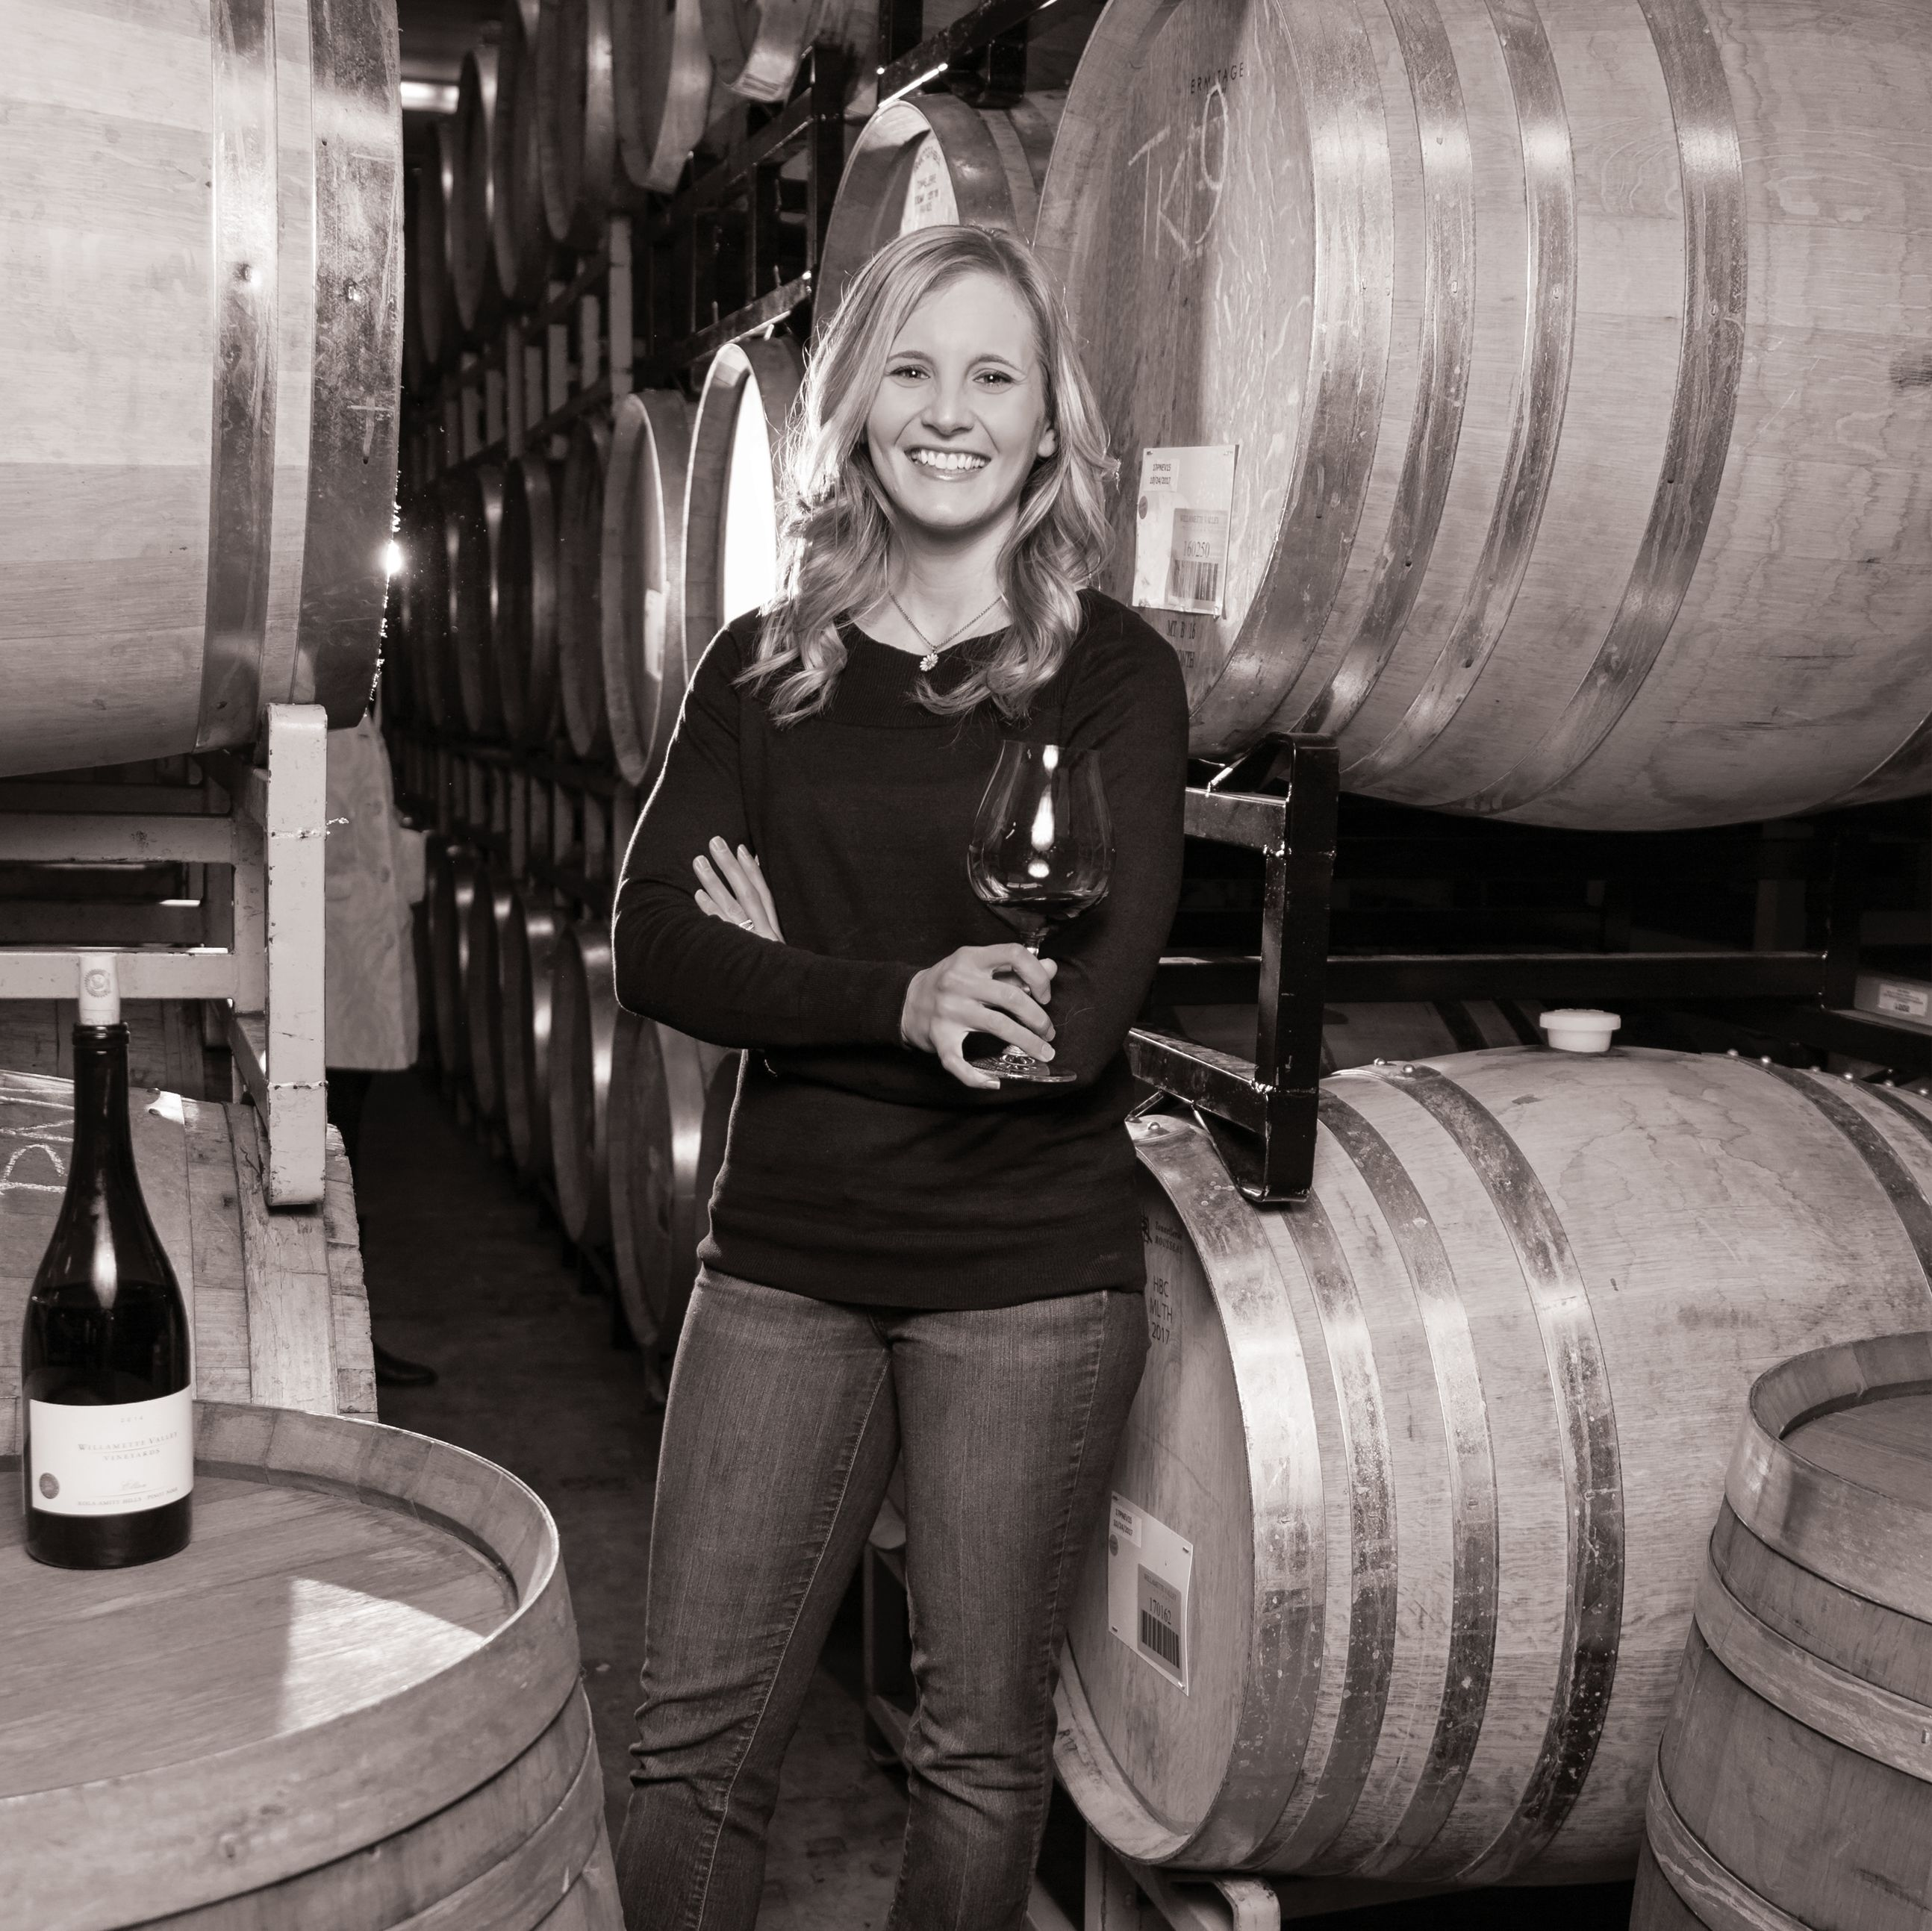 Bw 1 for print faces of women   christine   willamette valley vineyards vr0dit